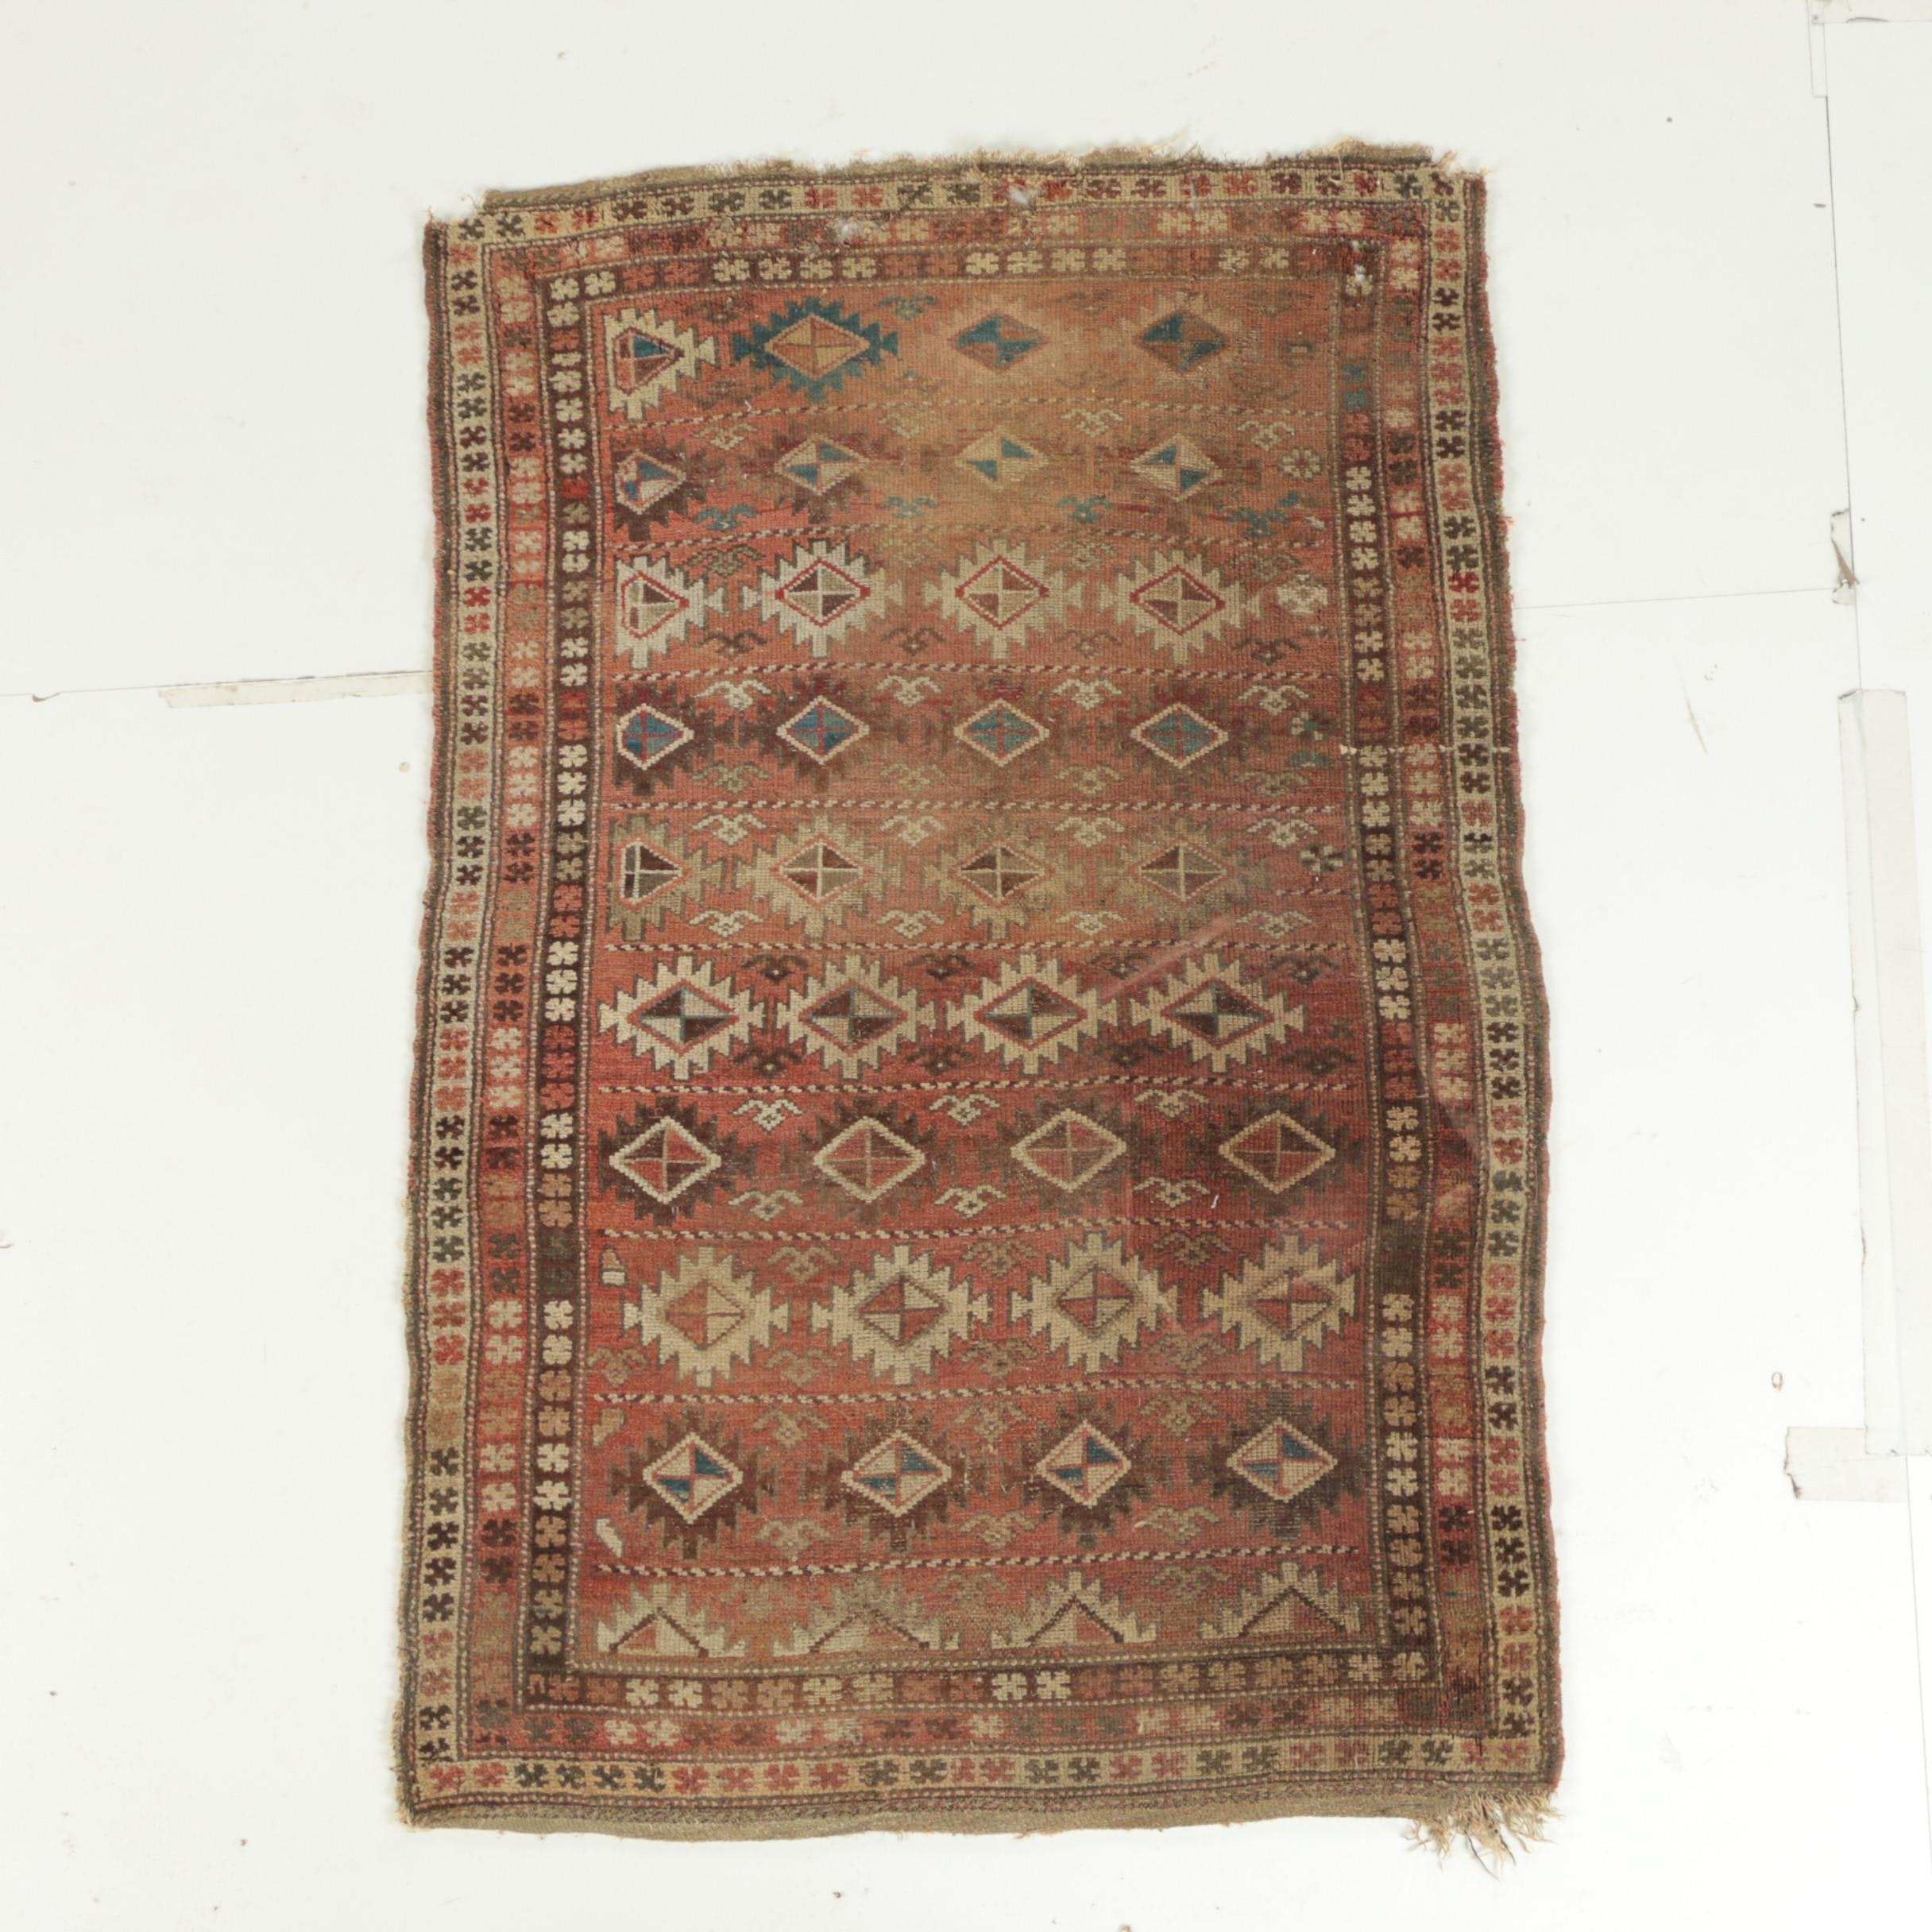 Antique Hand-Knotted Persian Veramin Accent Rug